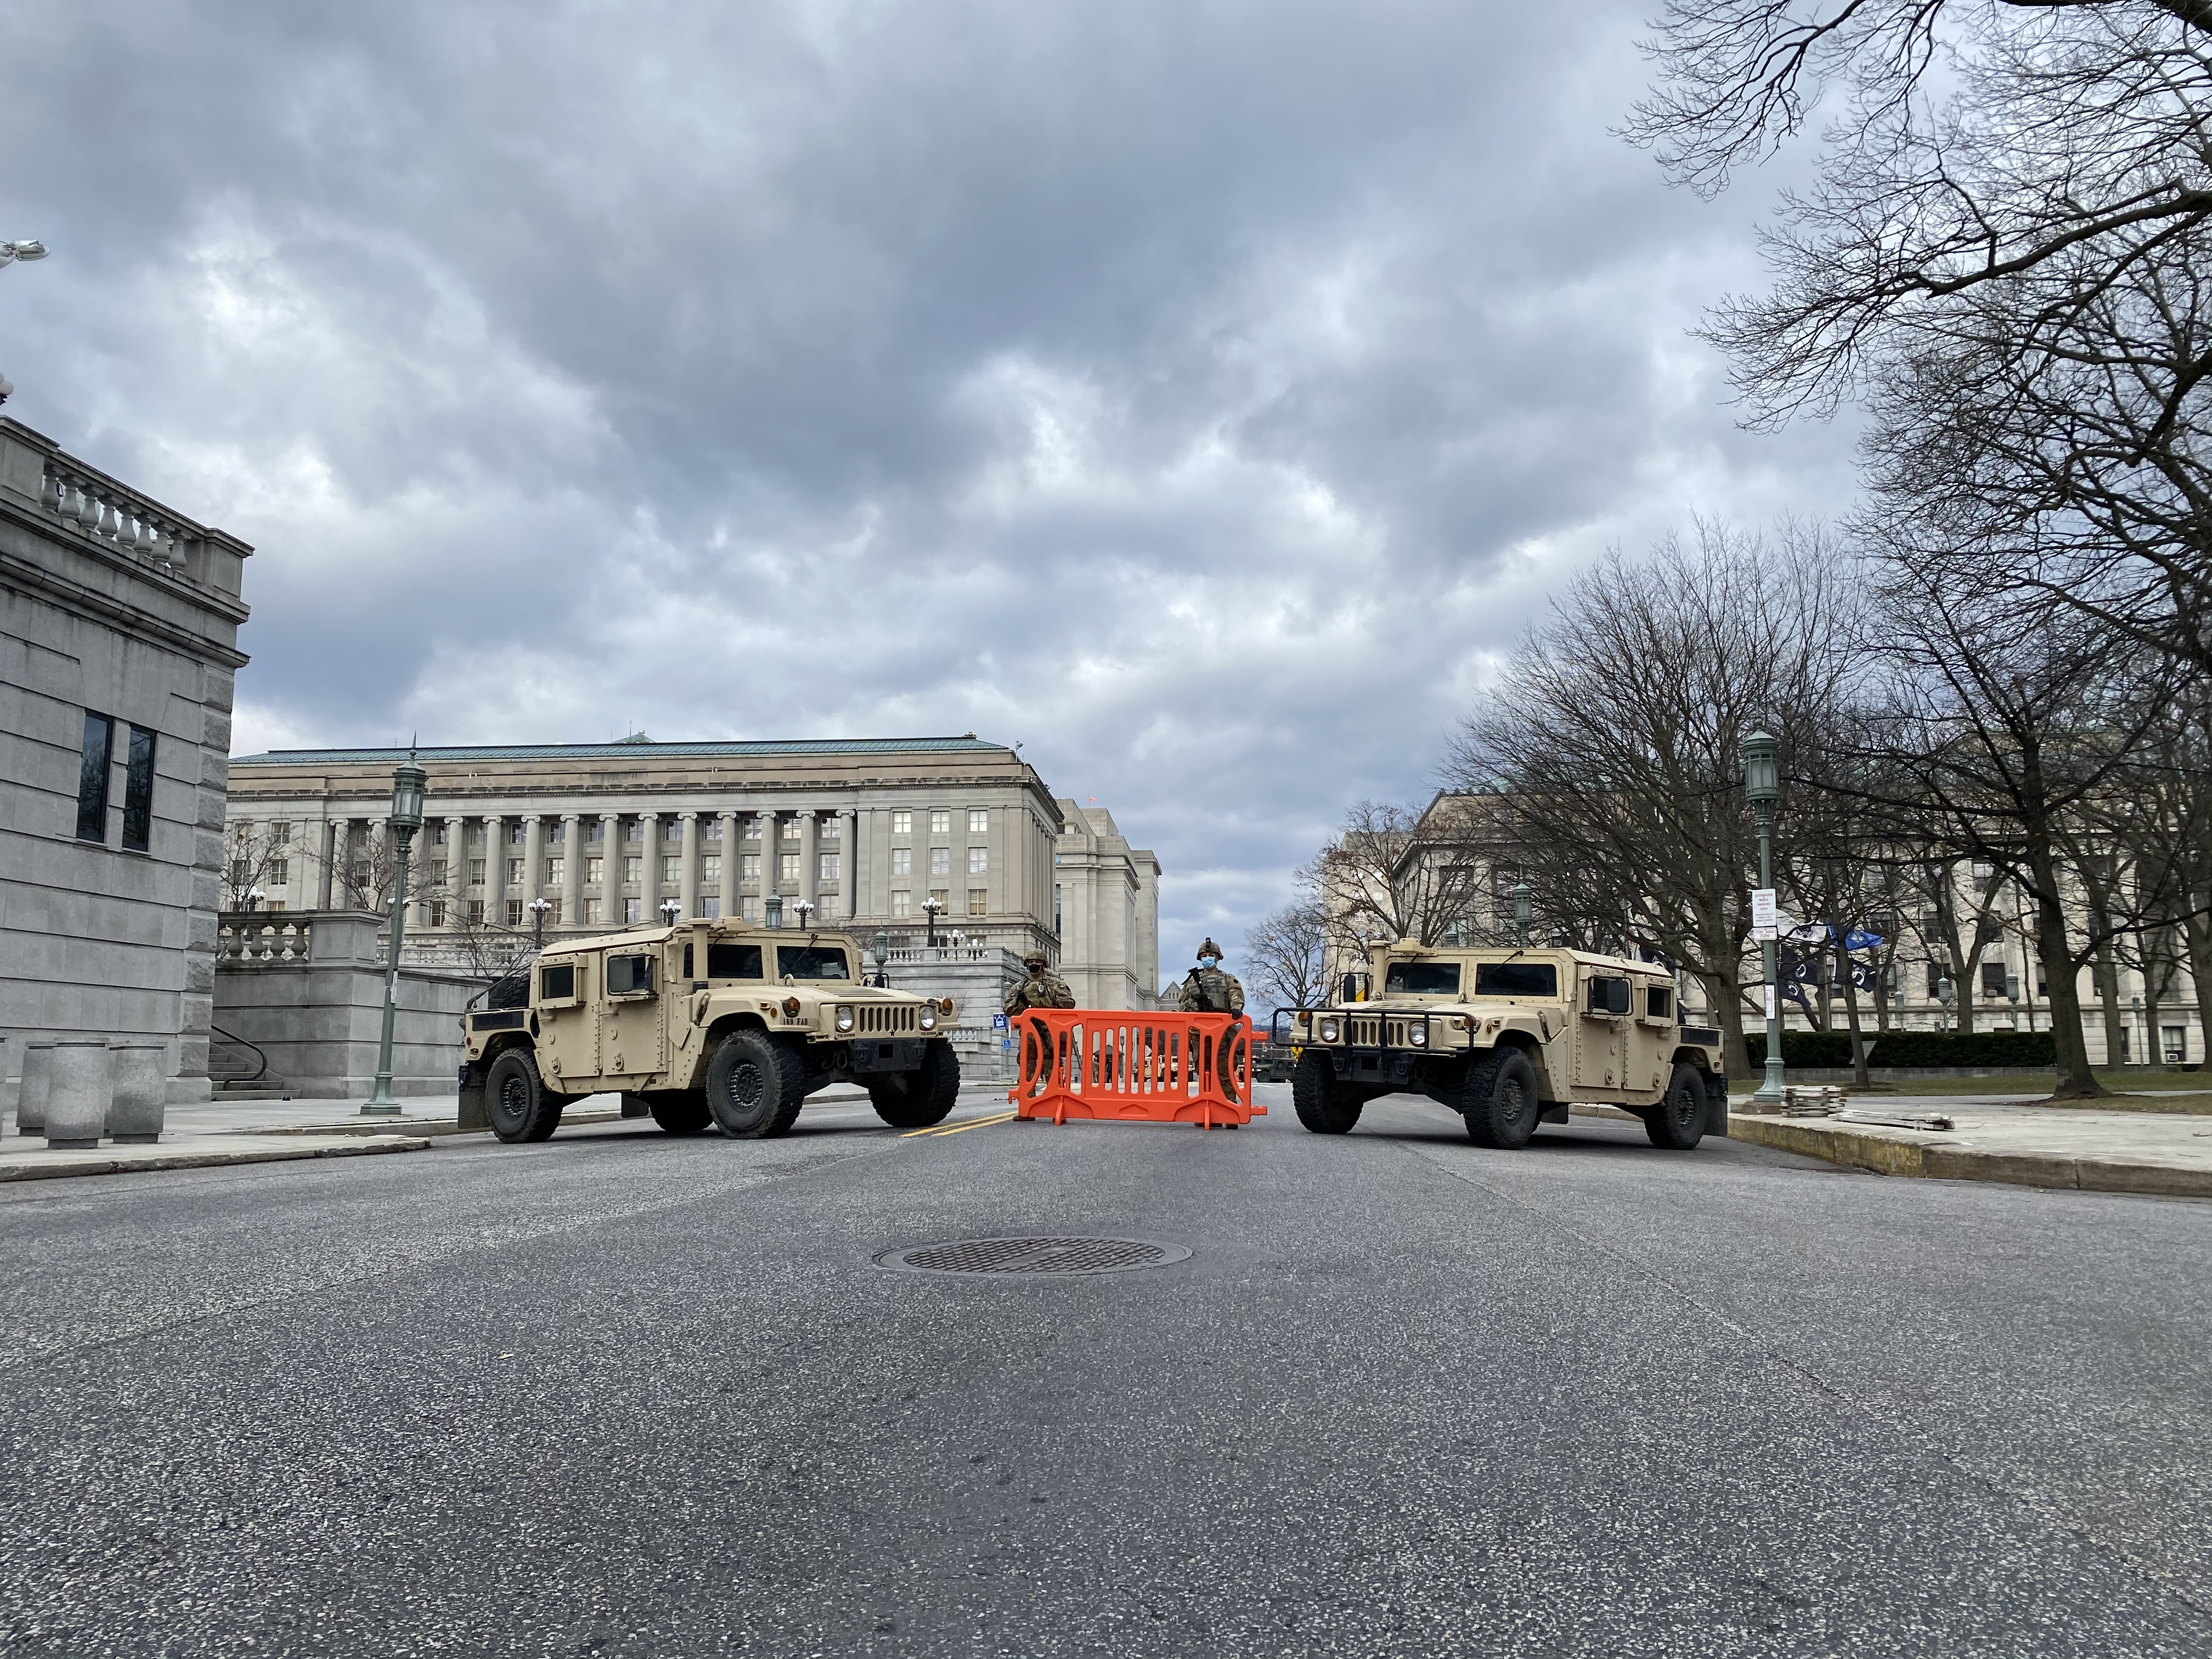 Two armored humvees are parked on a street near the Pa. state Capitol